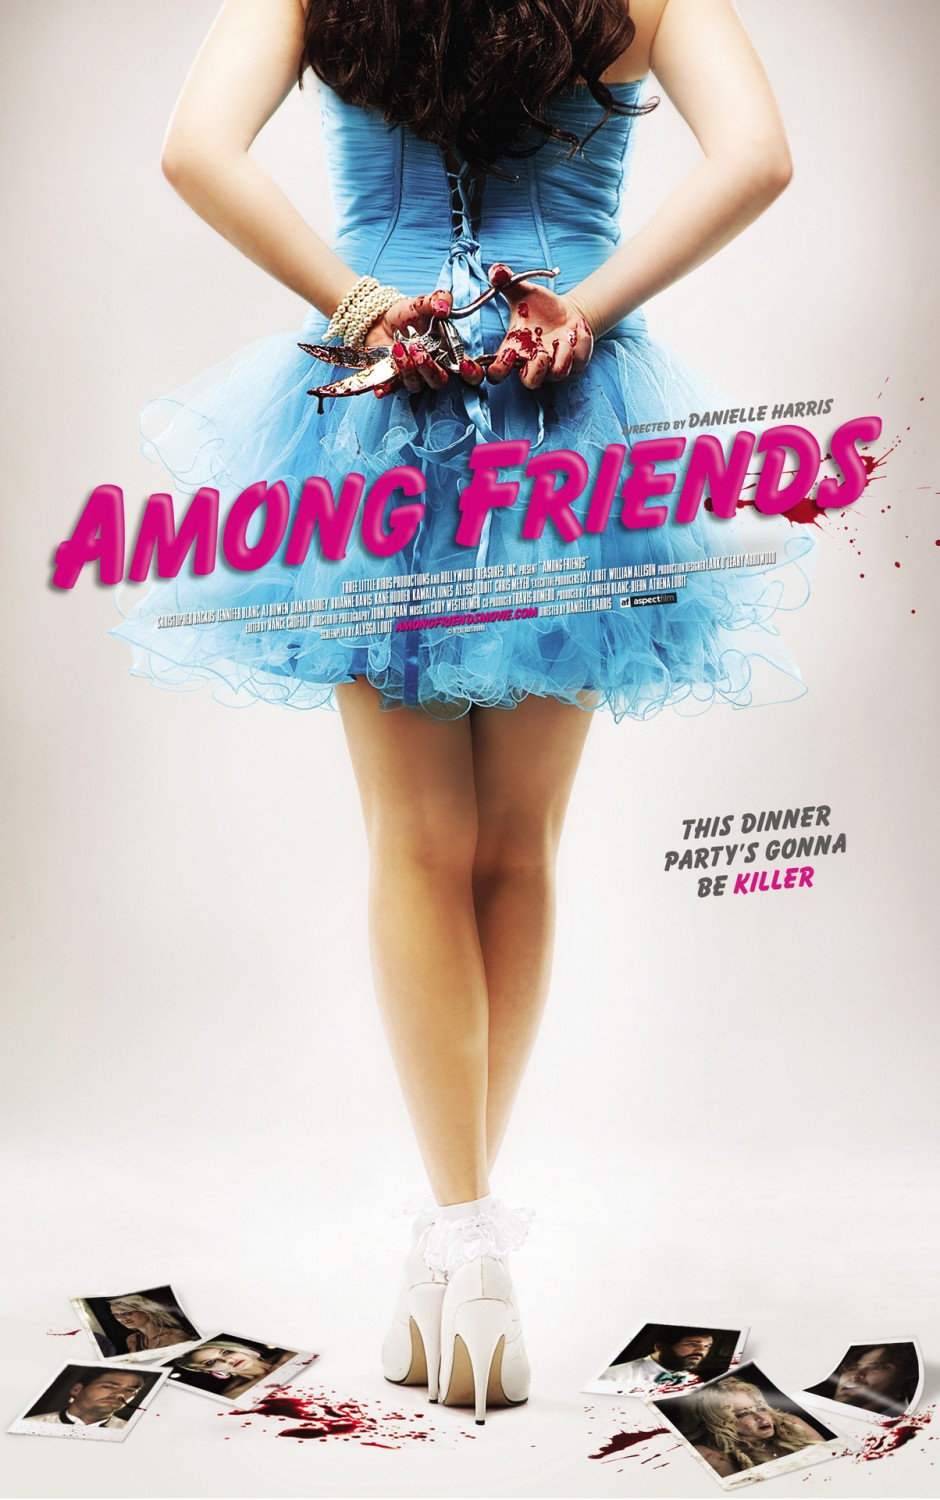 Among Friends 2012 Watch Online English Movies In HD